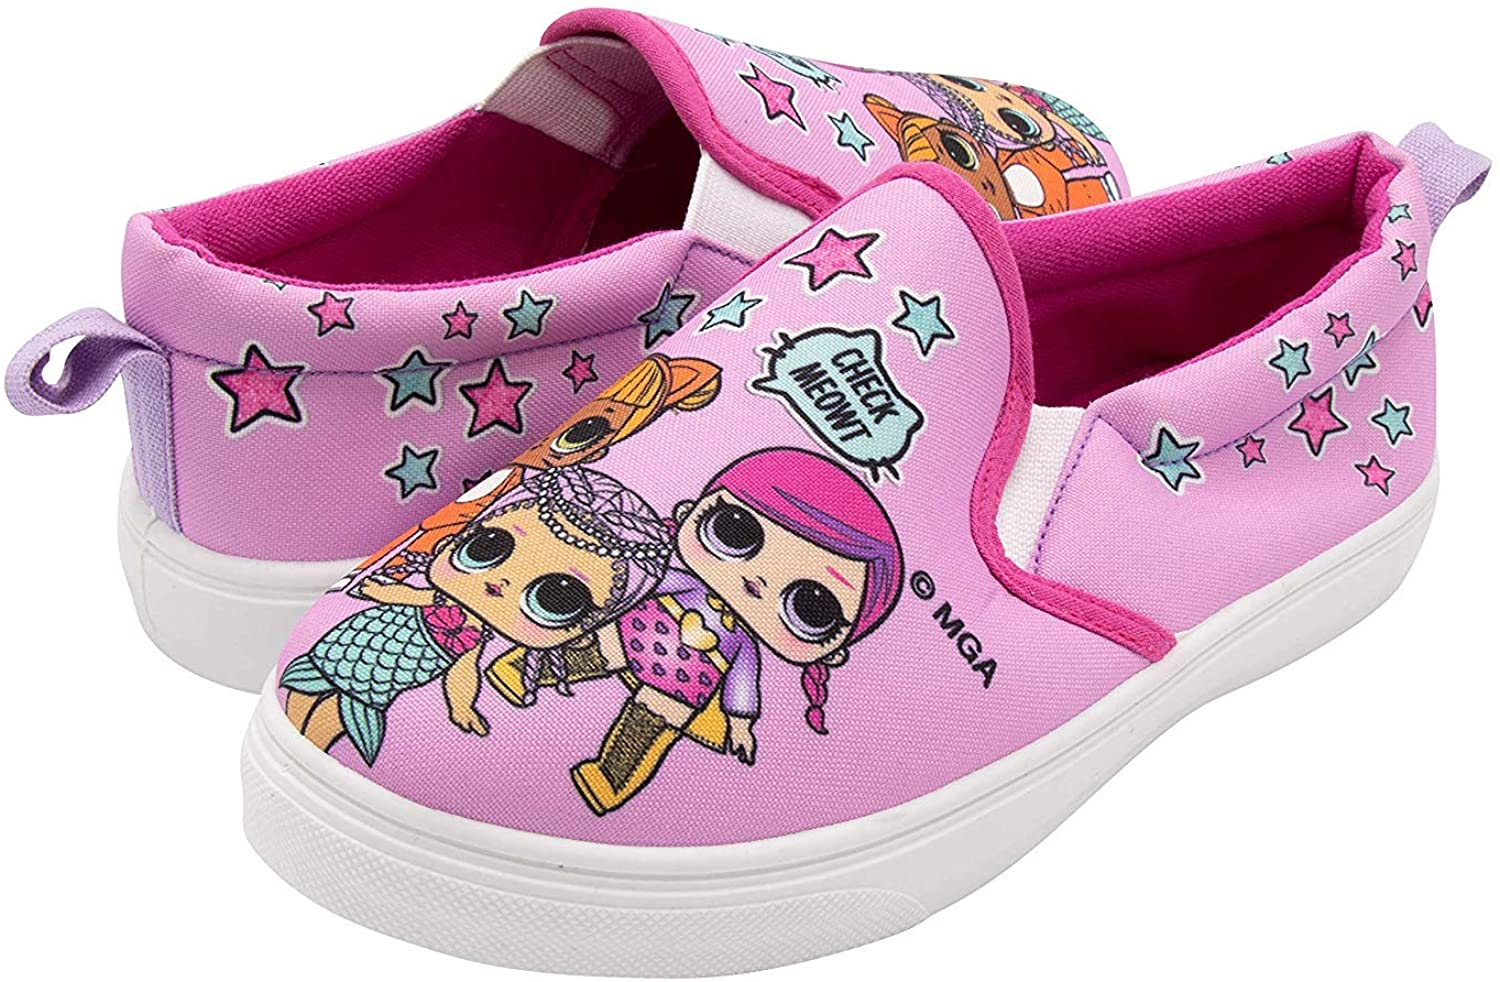 LOL Surprise! Girls Slip On Shoes - Pink Canvas Sneakers for Kids